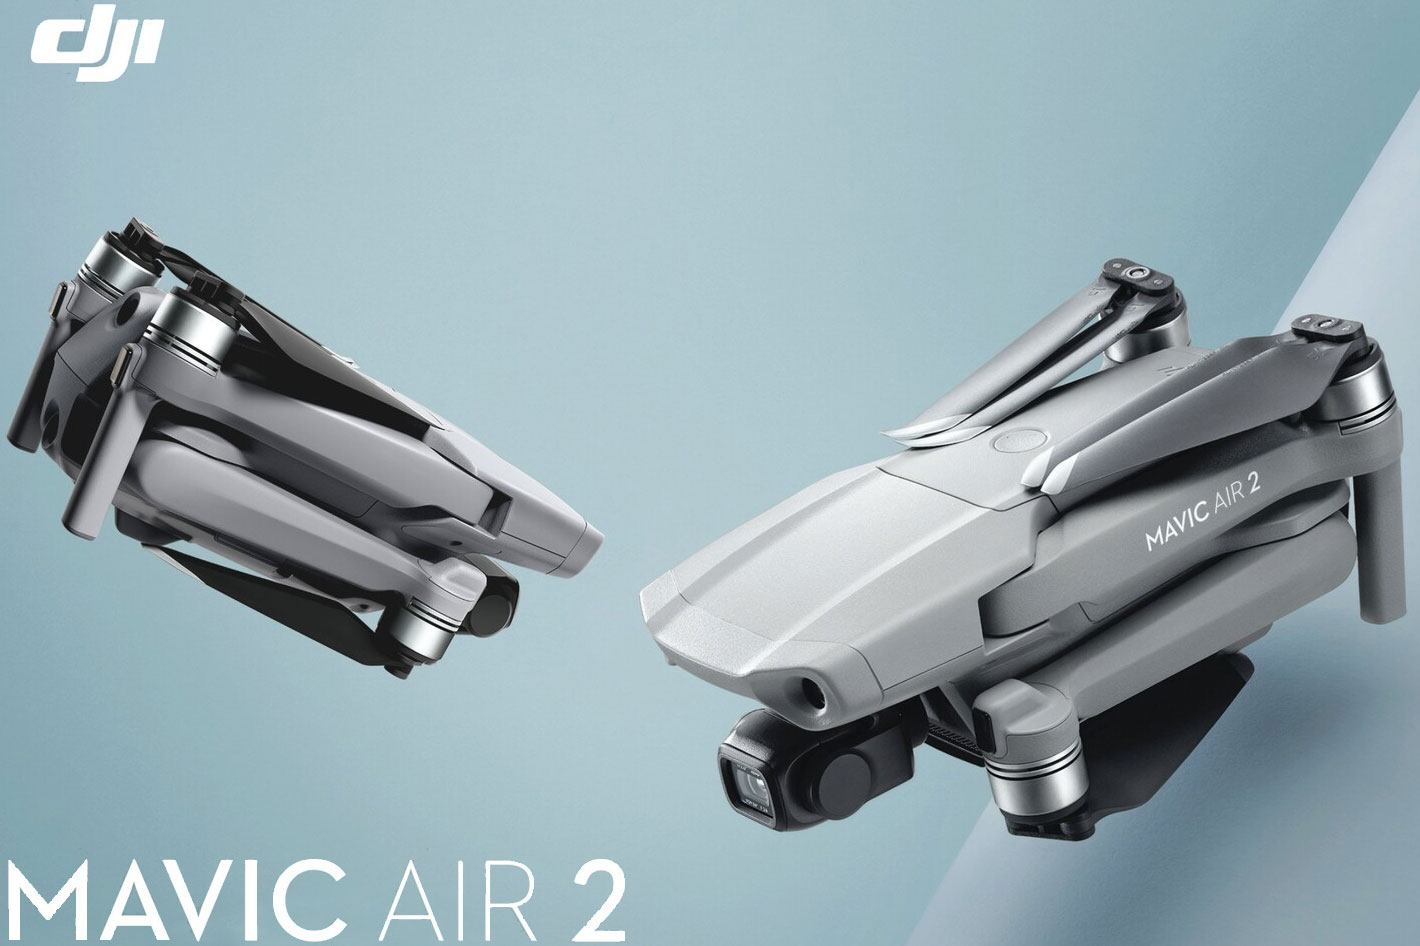 DJI Mavic Air 2: able to fly longer in a slower market 19